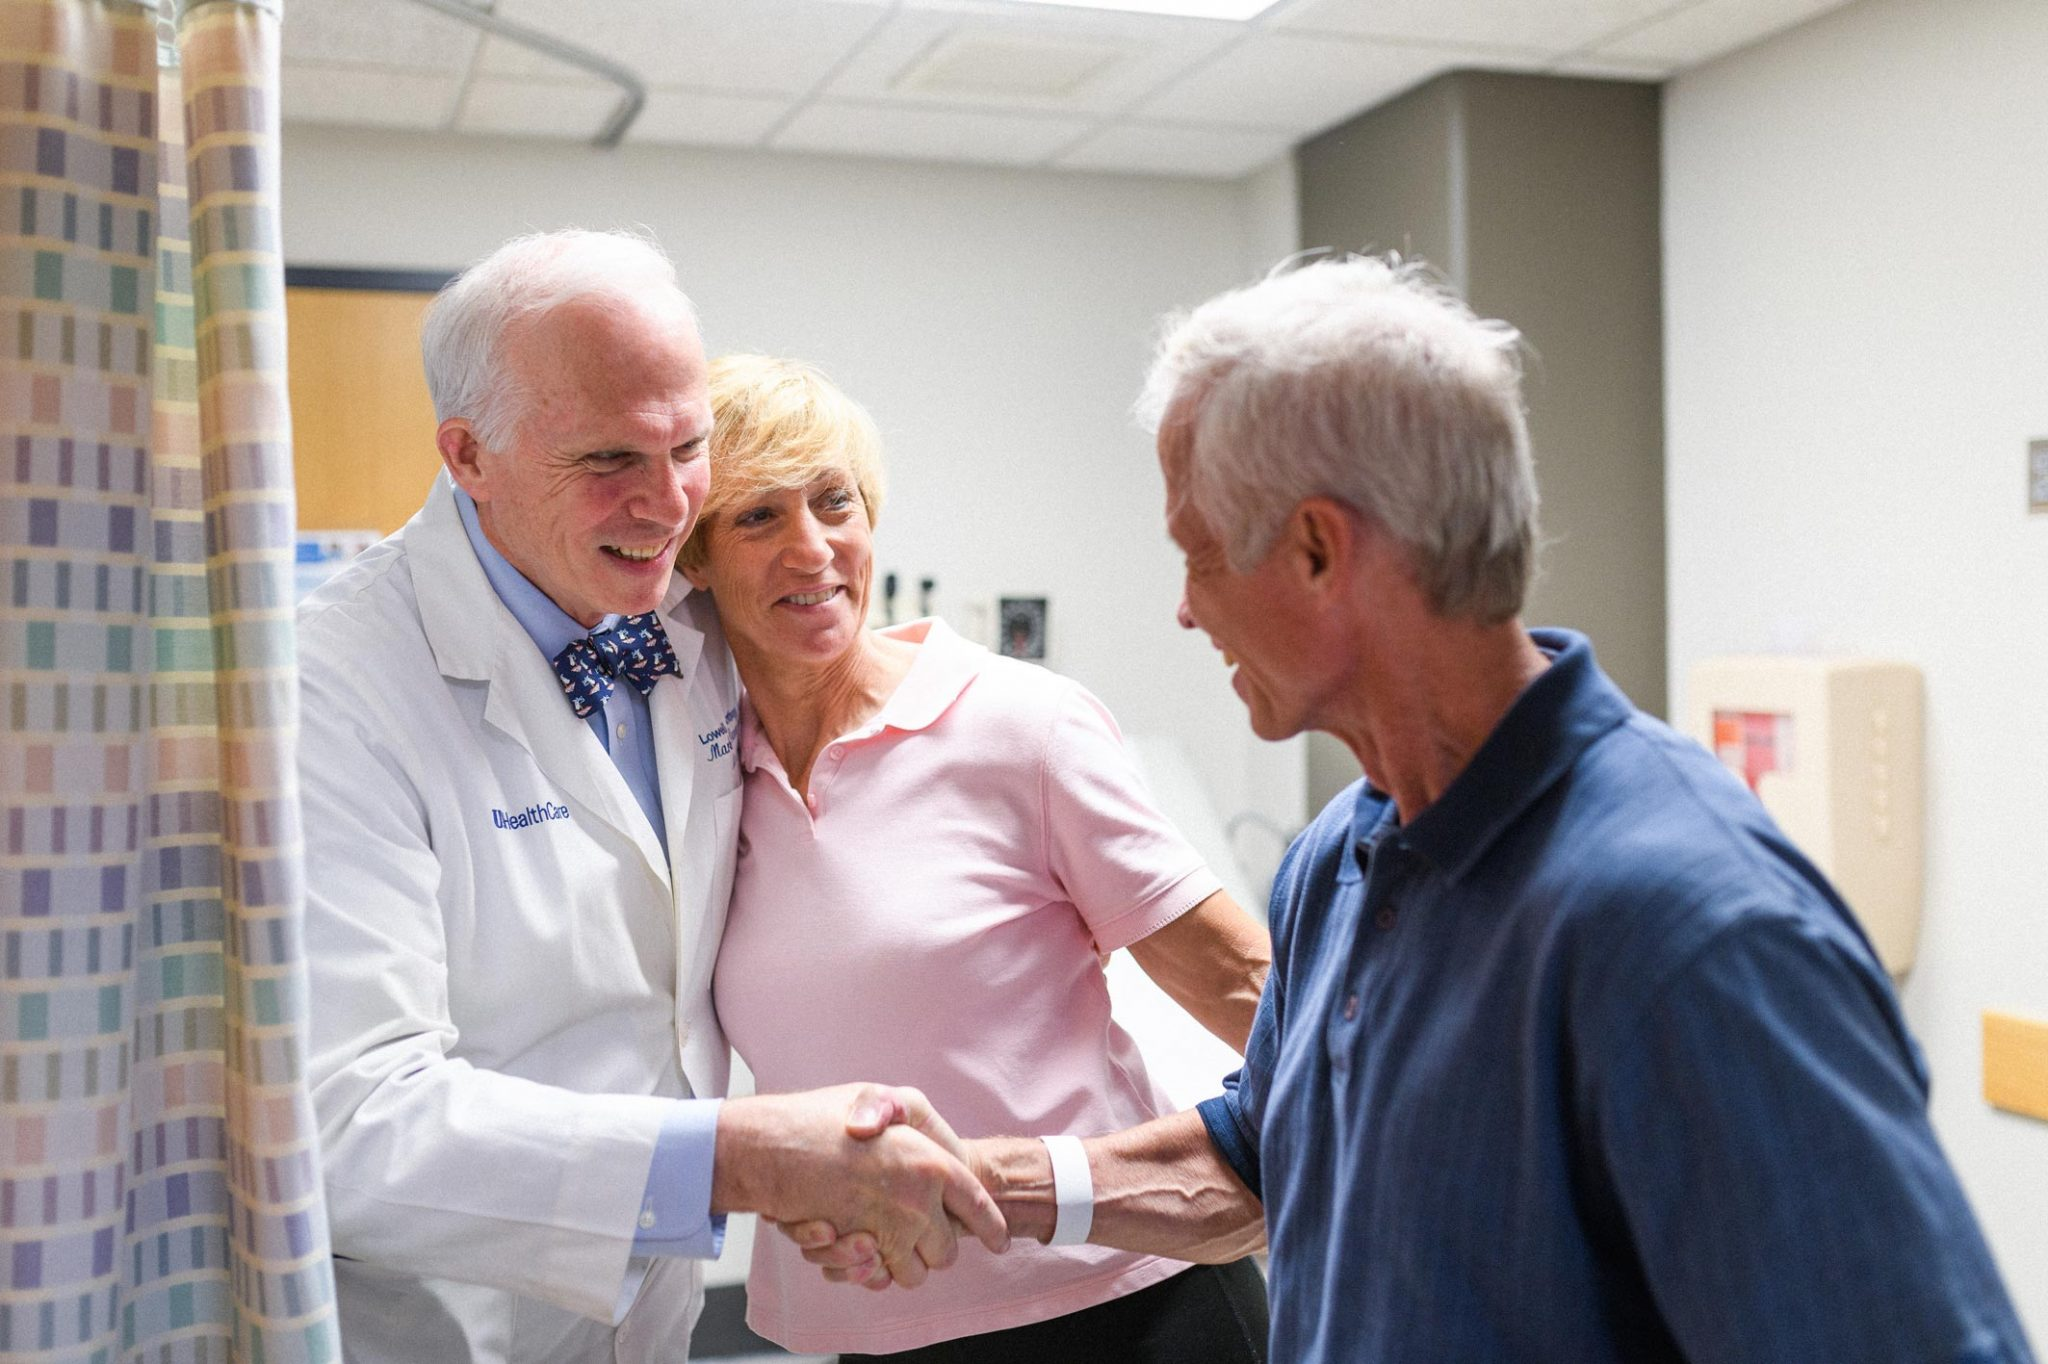 Joe and Cathy Marksteiner greeting Dr. Lowell Anthony, a specialist at Markey Cancer Center